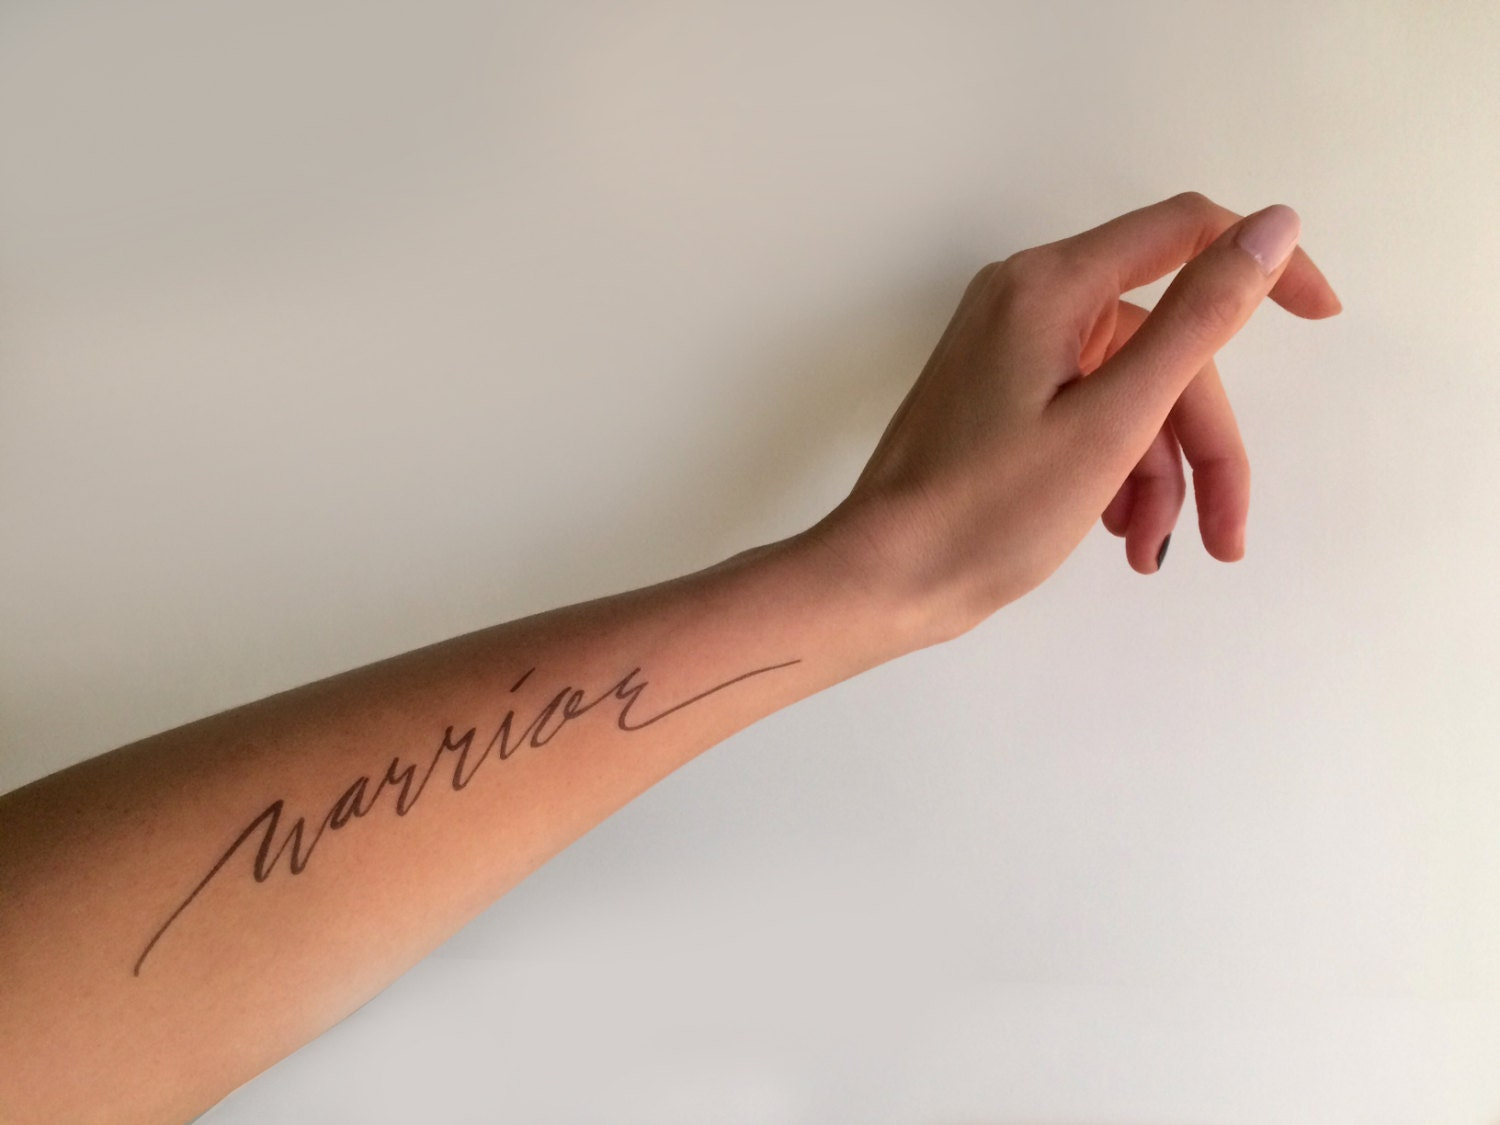 Warrior Large Temporary Tattoo Script Calligraphy Cursive in addition pare Prices on Big Temporary Tattoos Wings  Online Shopping Buy besides Wings Tattoos Designs Promotion Shop for Promotional Wings Tattoos also 23 Por Warrior Tattoos and Meanings   Tattoos Win further Warrior Temporary Tattoos   Zazzle also Stephen Curry Golden Tattoo Pictures to Pin on Pinterest   Tattoos likewise Por Women Tribal Tattoos Buy Cheap Women Tribal Tattoos lots likewise Tattly™ Designy Temporary Tattoos    Warrior Not Worrier by James moreover  additionally tattoodesign  tattoo shoulder tattoo ideas male  aztec warrior moreover Mascots     Sports   Our Temporary Tattoos. on warrior temporary tattoos for adults